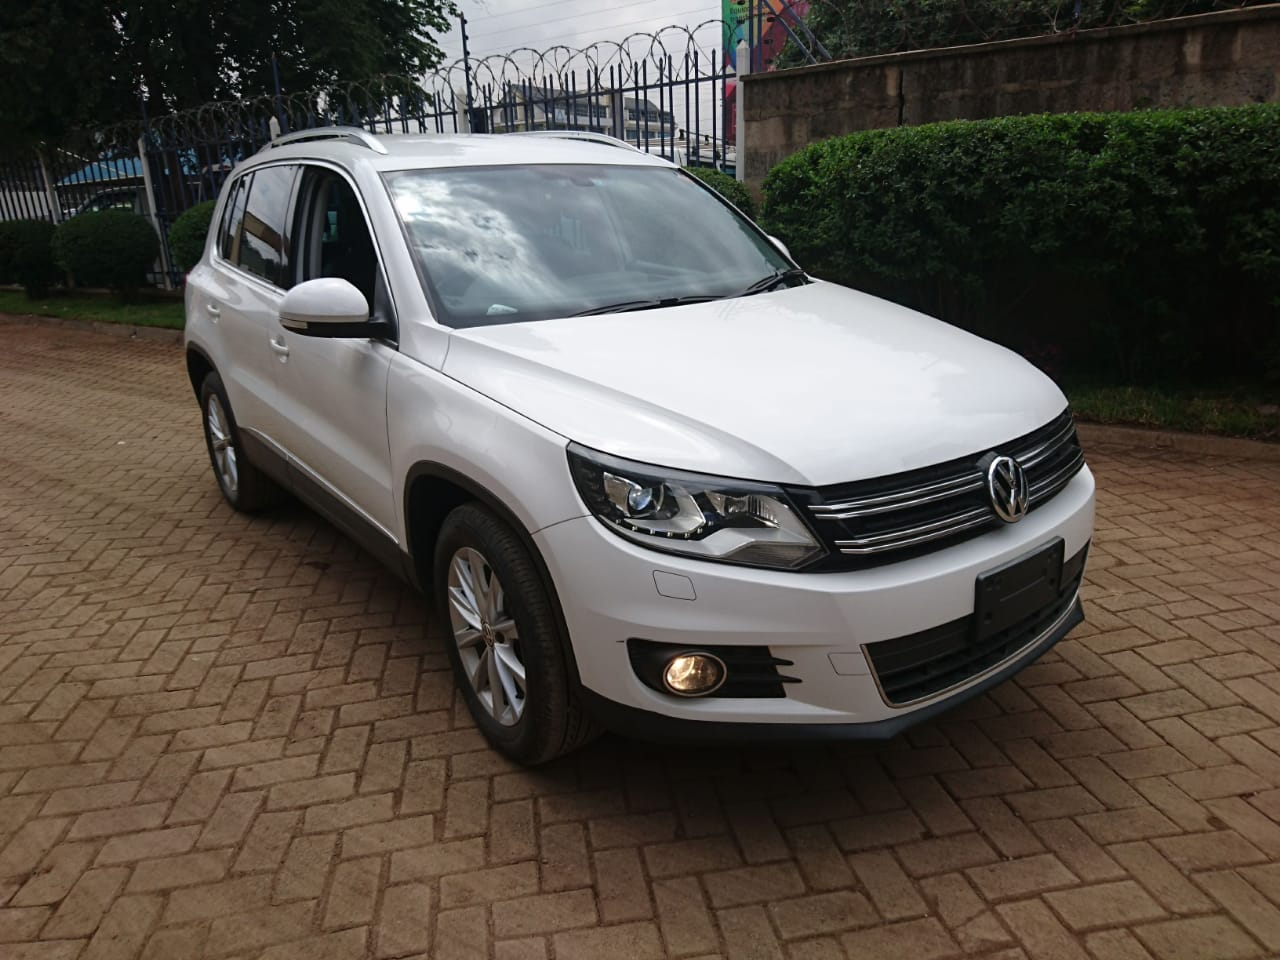 Volkswagen Tiguan 2012 for sale in Nairobi, Kenya